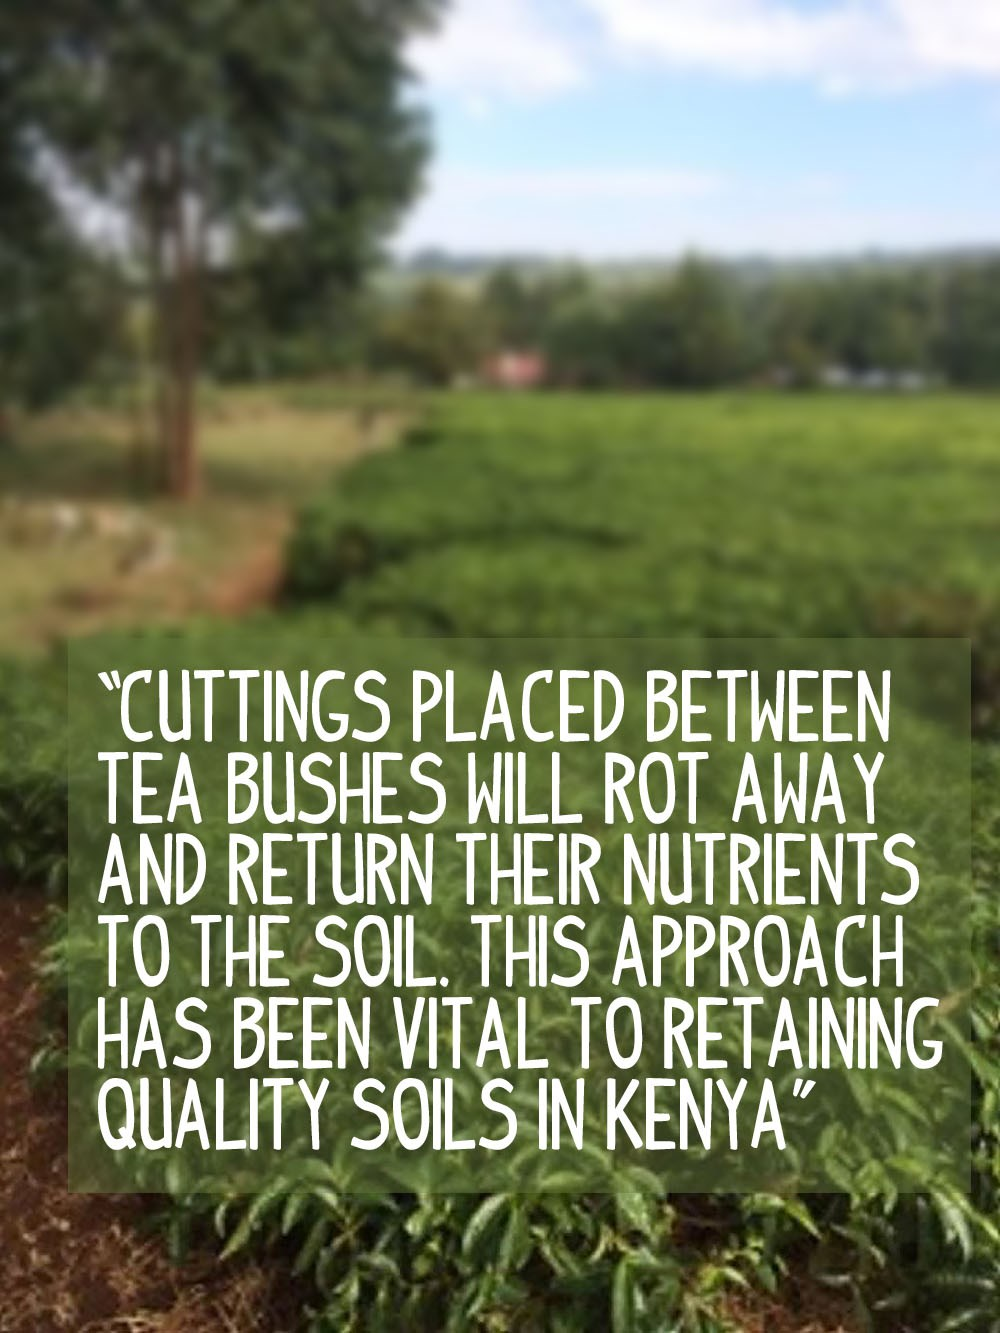 Placing cuttings around tea bushes are vital for maintaining soil quality